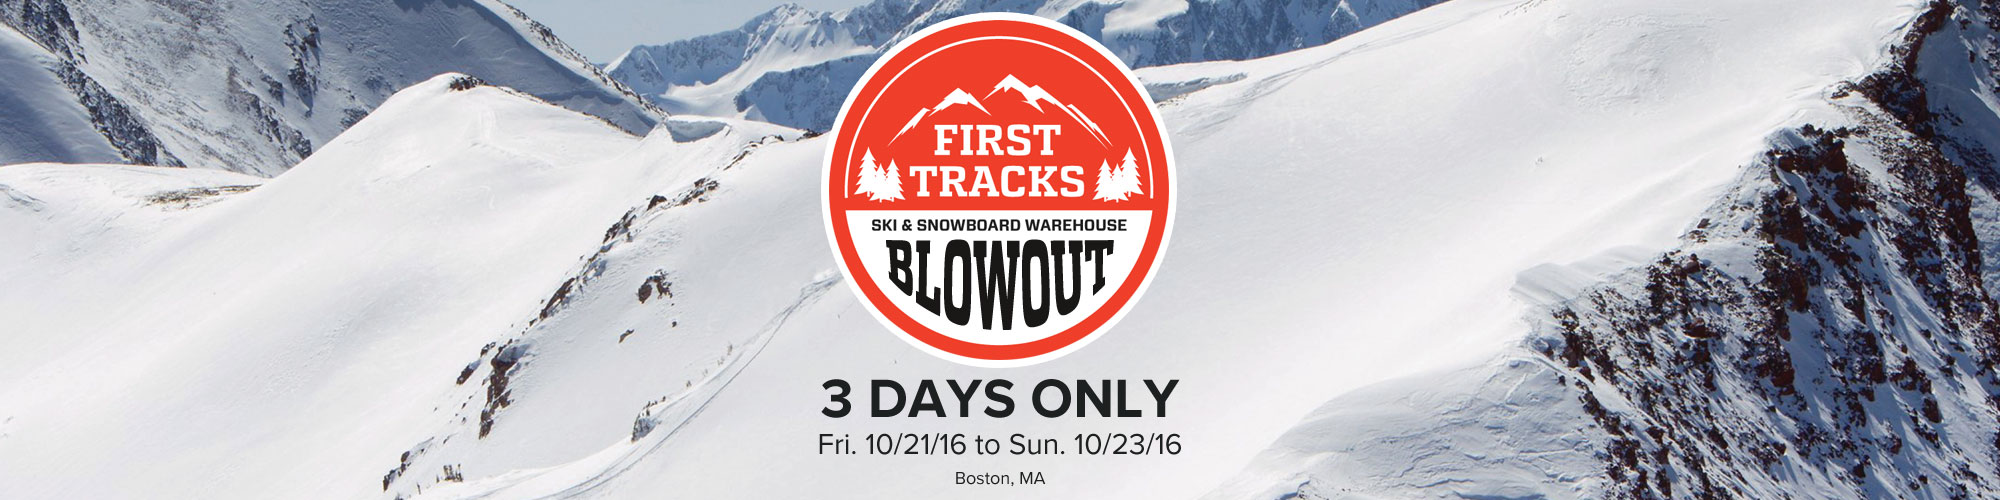 First Tracks Boston - Ski and Snowboard Blowout